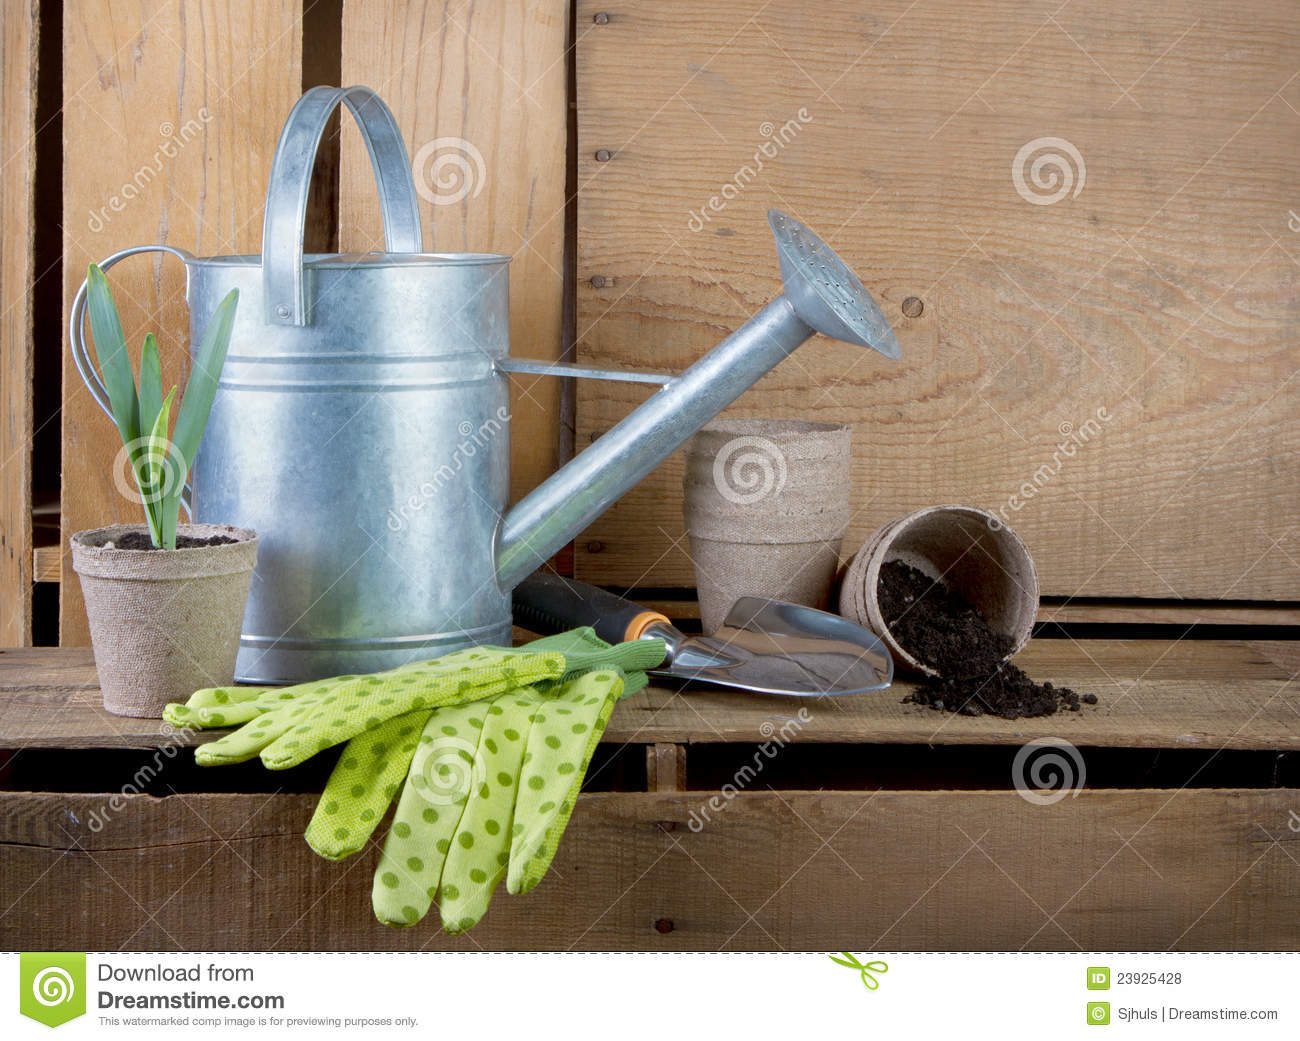 Watering can and gardening tools on wooden crates stock for Gardening tools watering